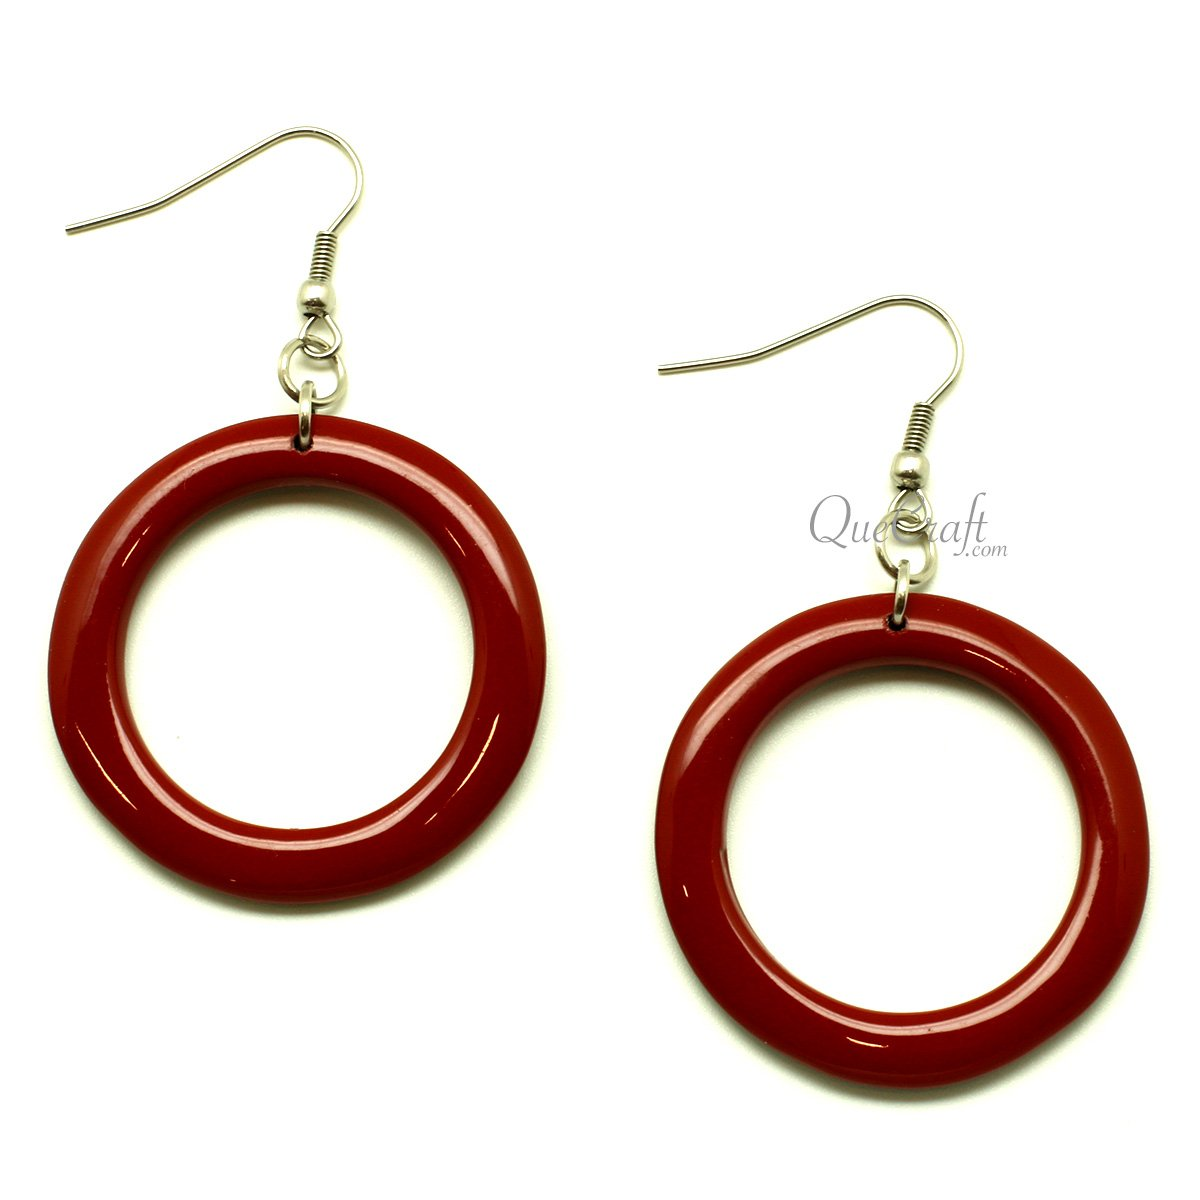 Horn & Lacquer Earrings #13401 - HORN.JEWELRY by QueCraft